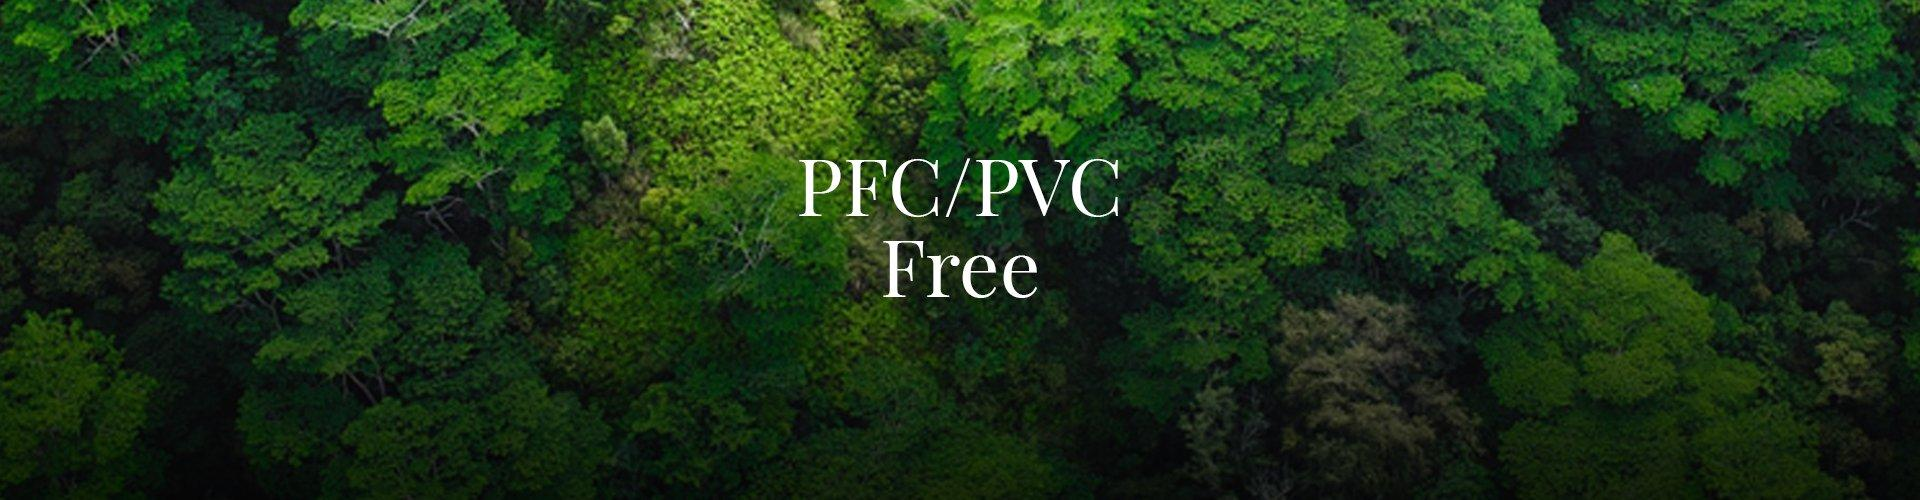 An aerial image of a green forest with text saying PFC/PVC Free